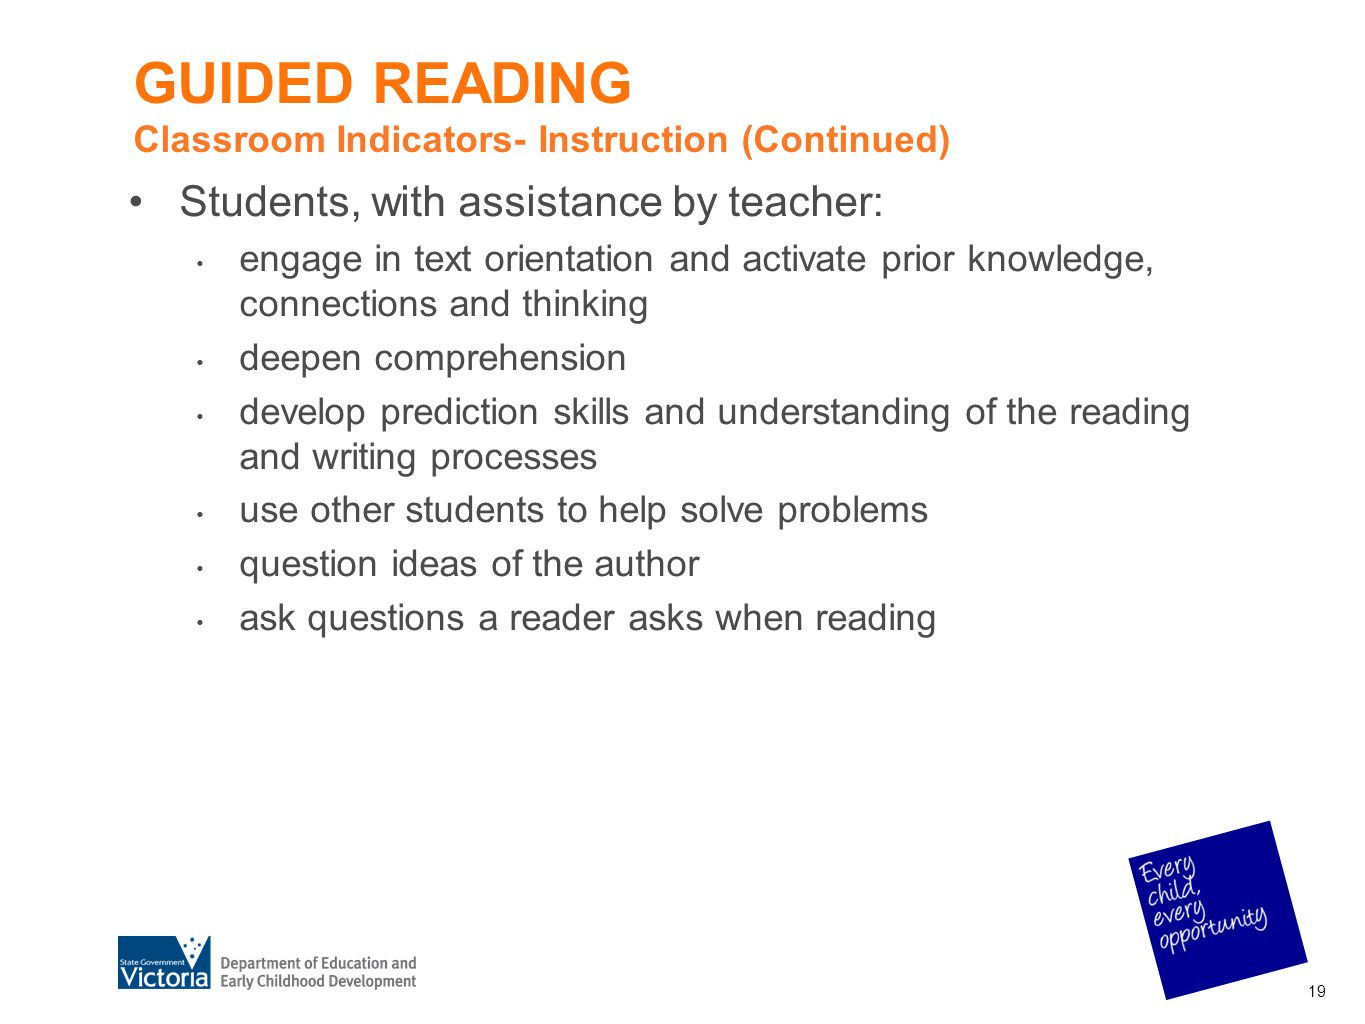 GUIDED READING Classroom Indicators- Instruction (Continued)